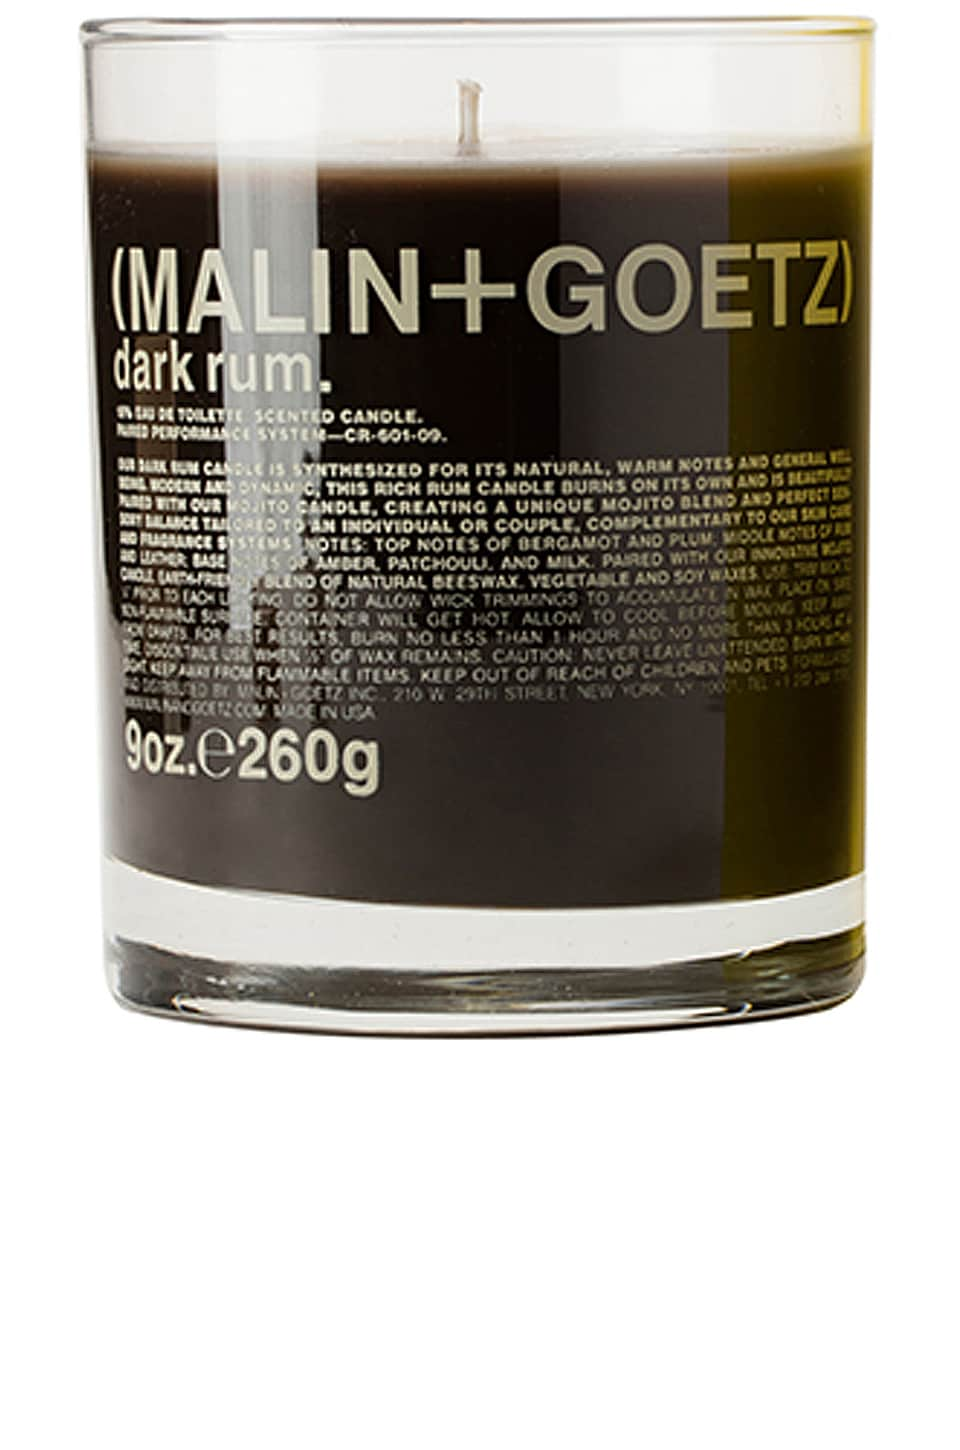 MALIN+GOETZ Dark Rum Candle